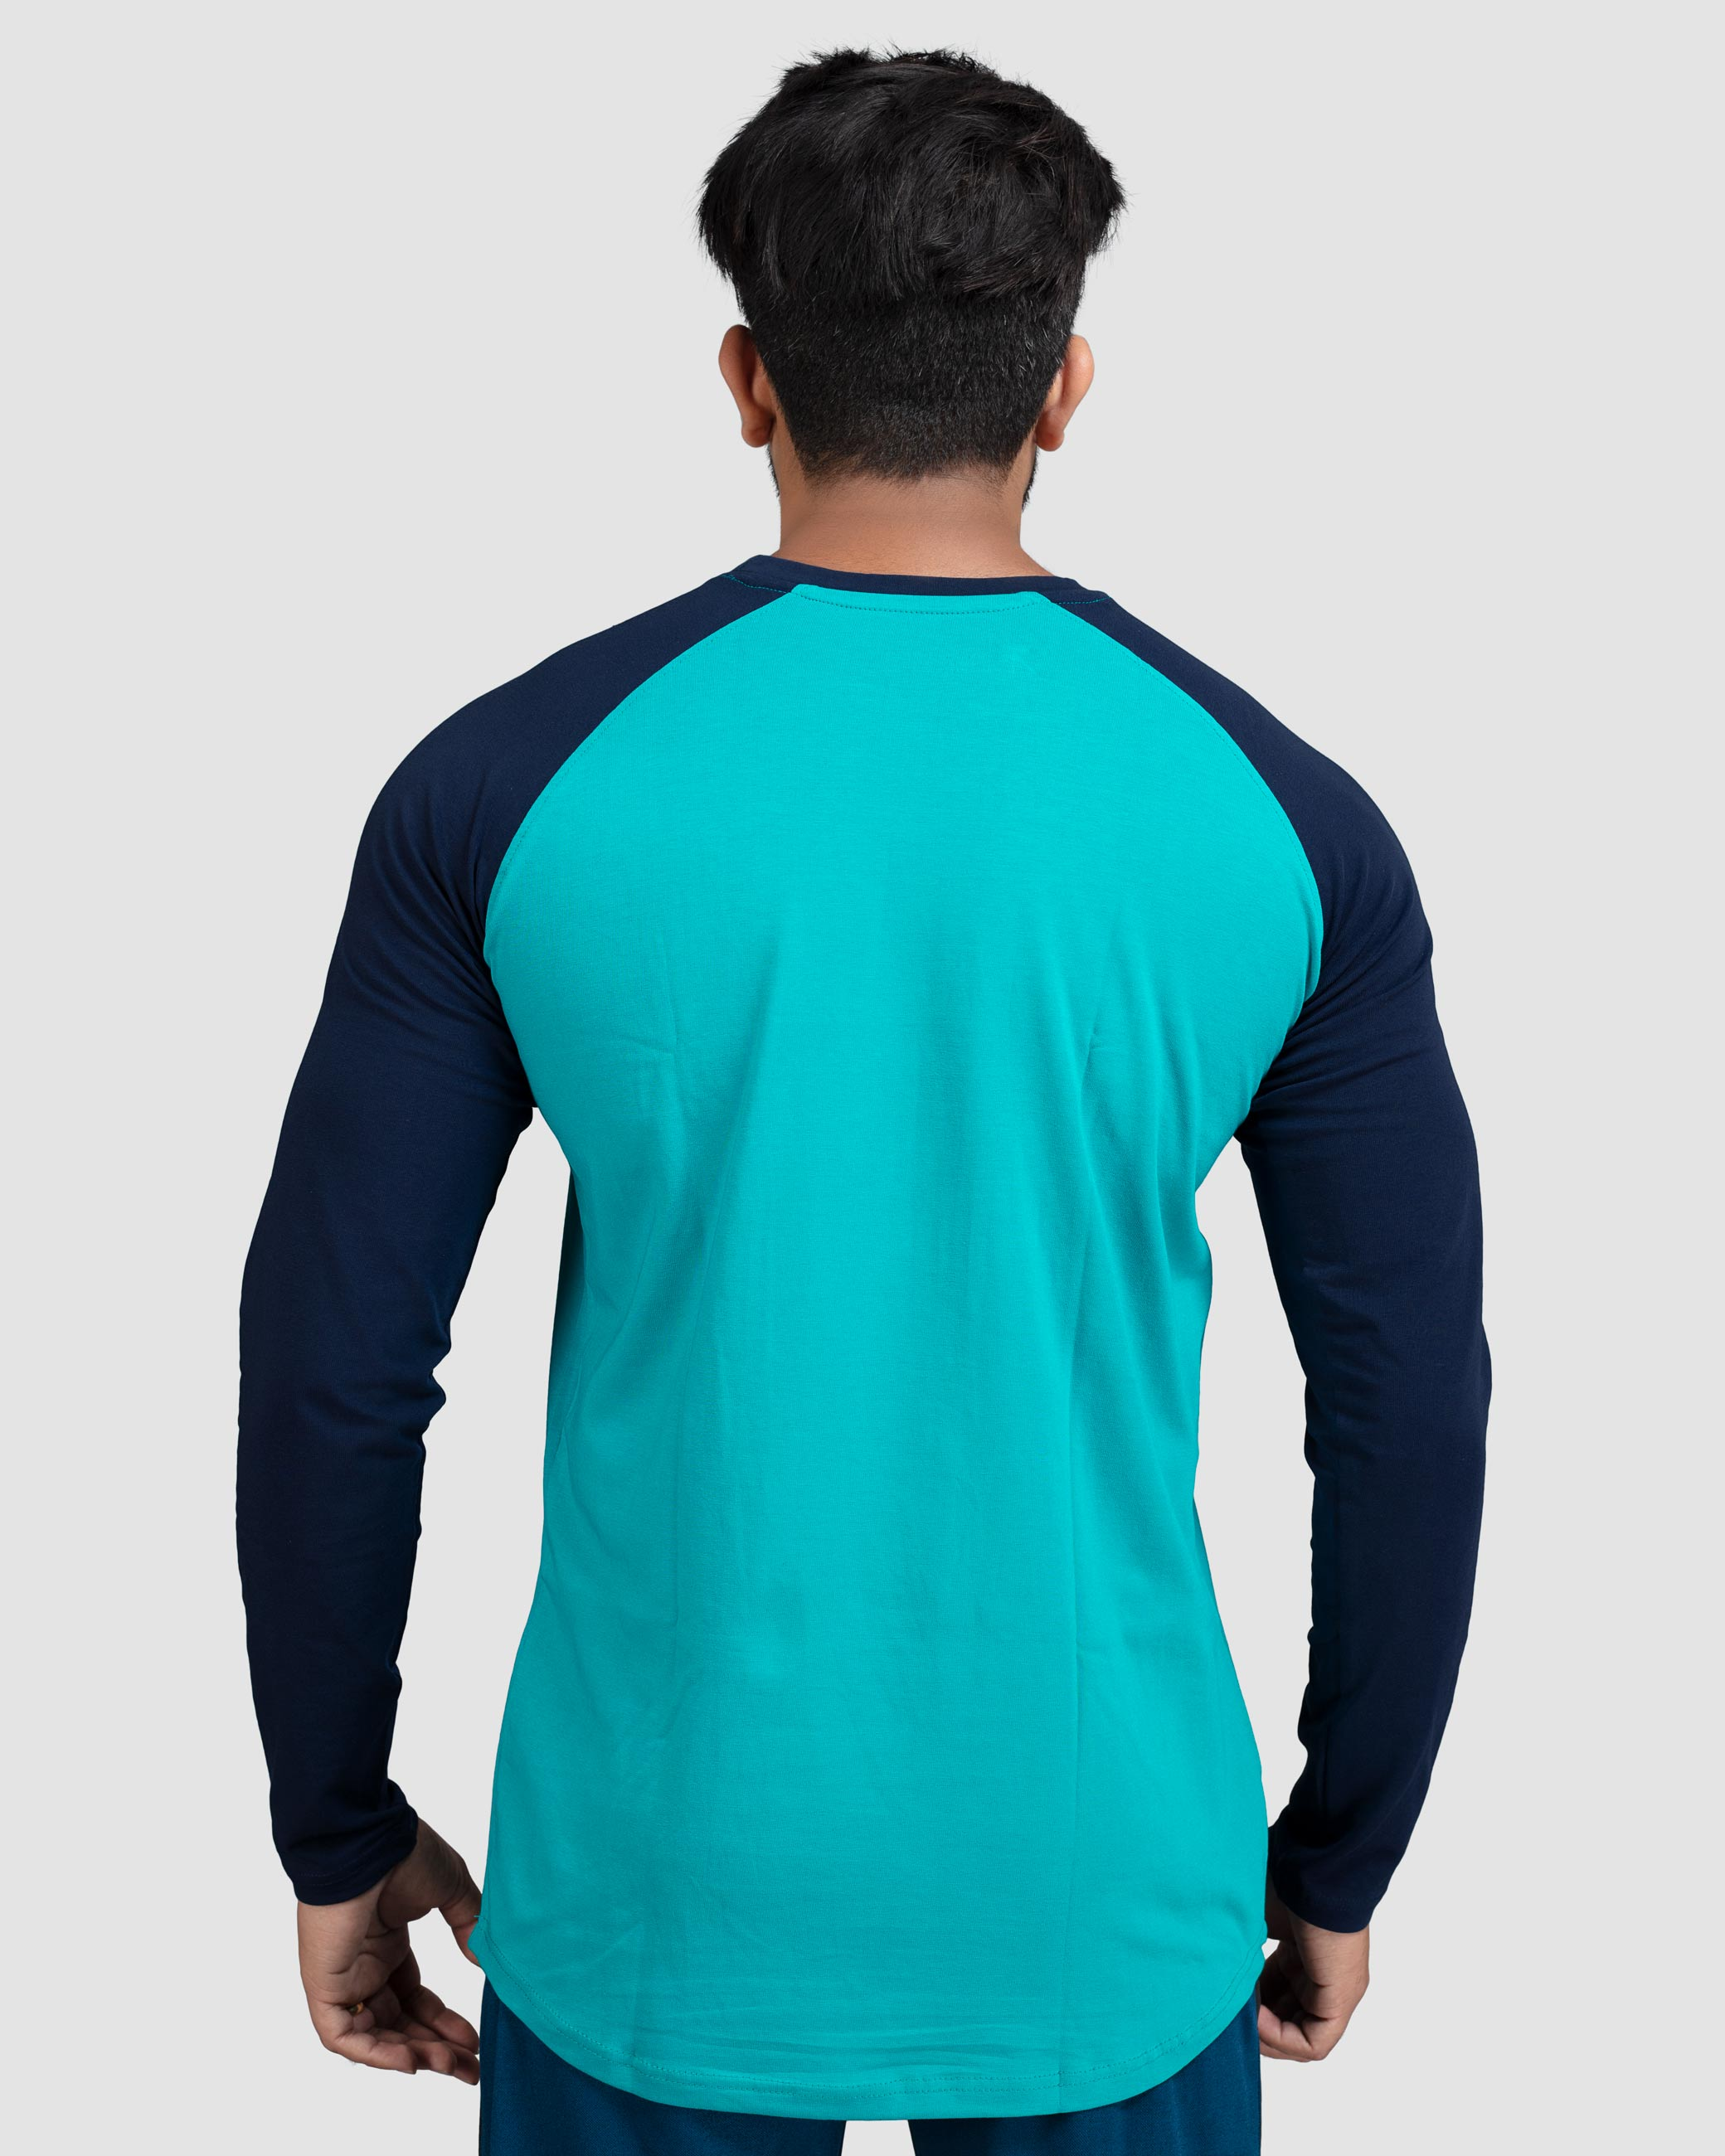 Flex Inspire diverse raglan sleeves(Turquoise with Navy Blue sleeve) Athflex